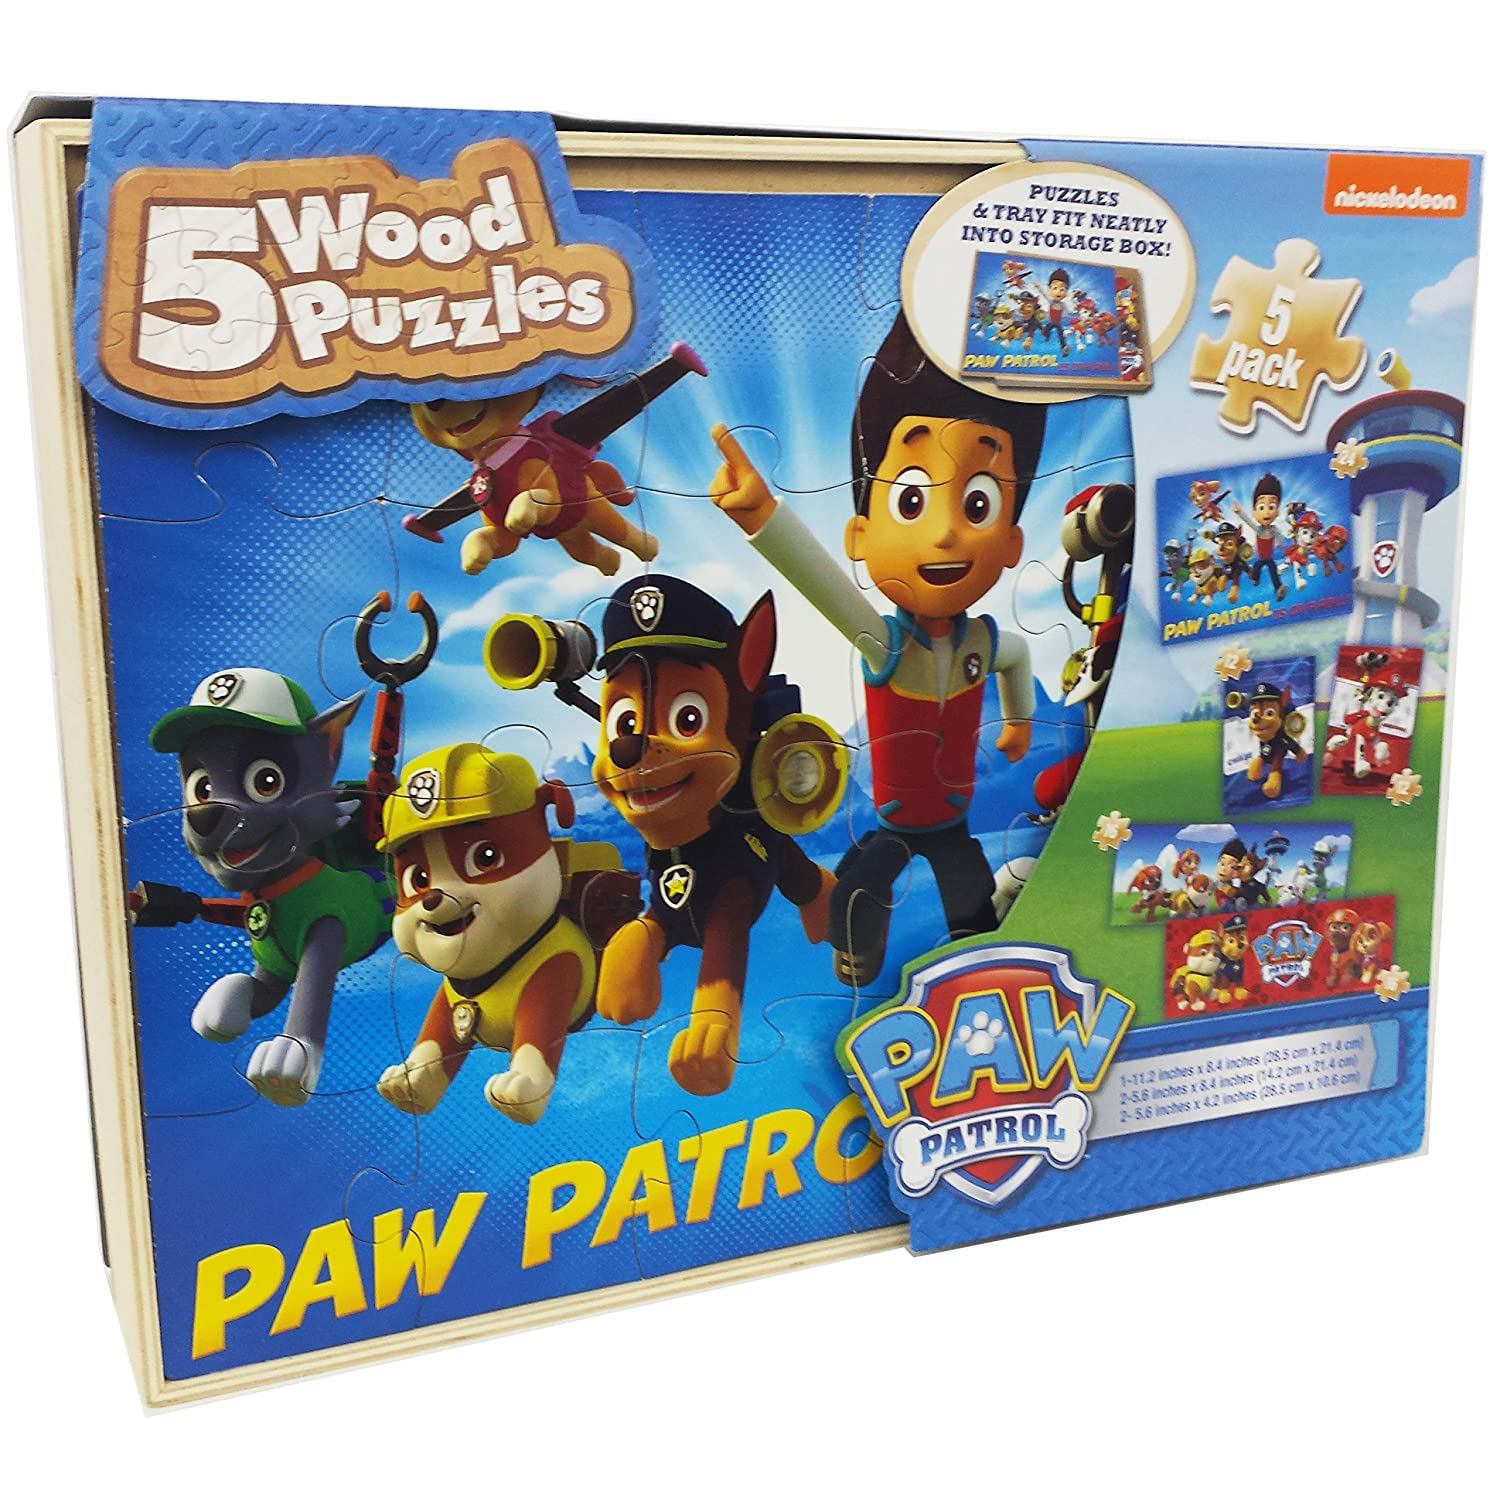 Paw Patrol Toy Organizer Bin Cubby Kids Child Storage Box: Paw Patrol 5 Wood Puzzles Assembly Toy Kids Gift Play Set